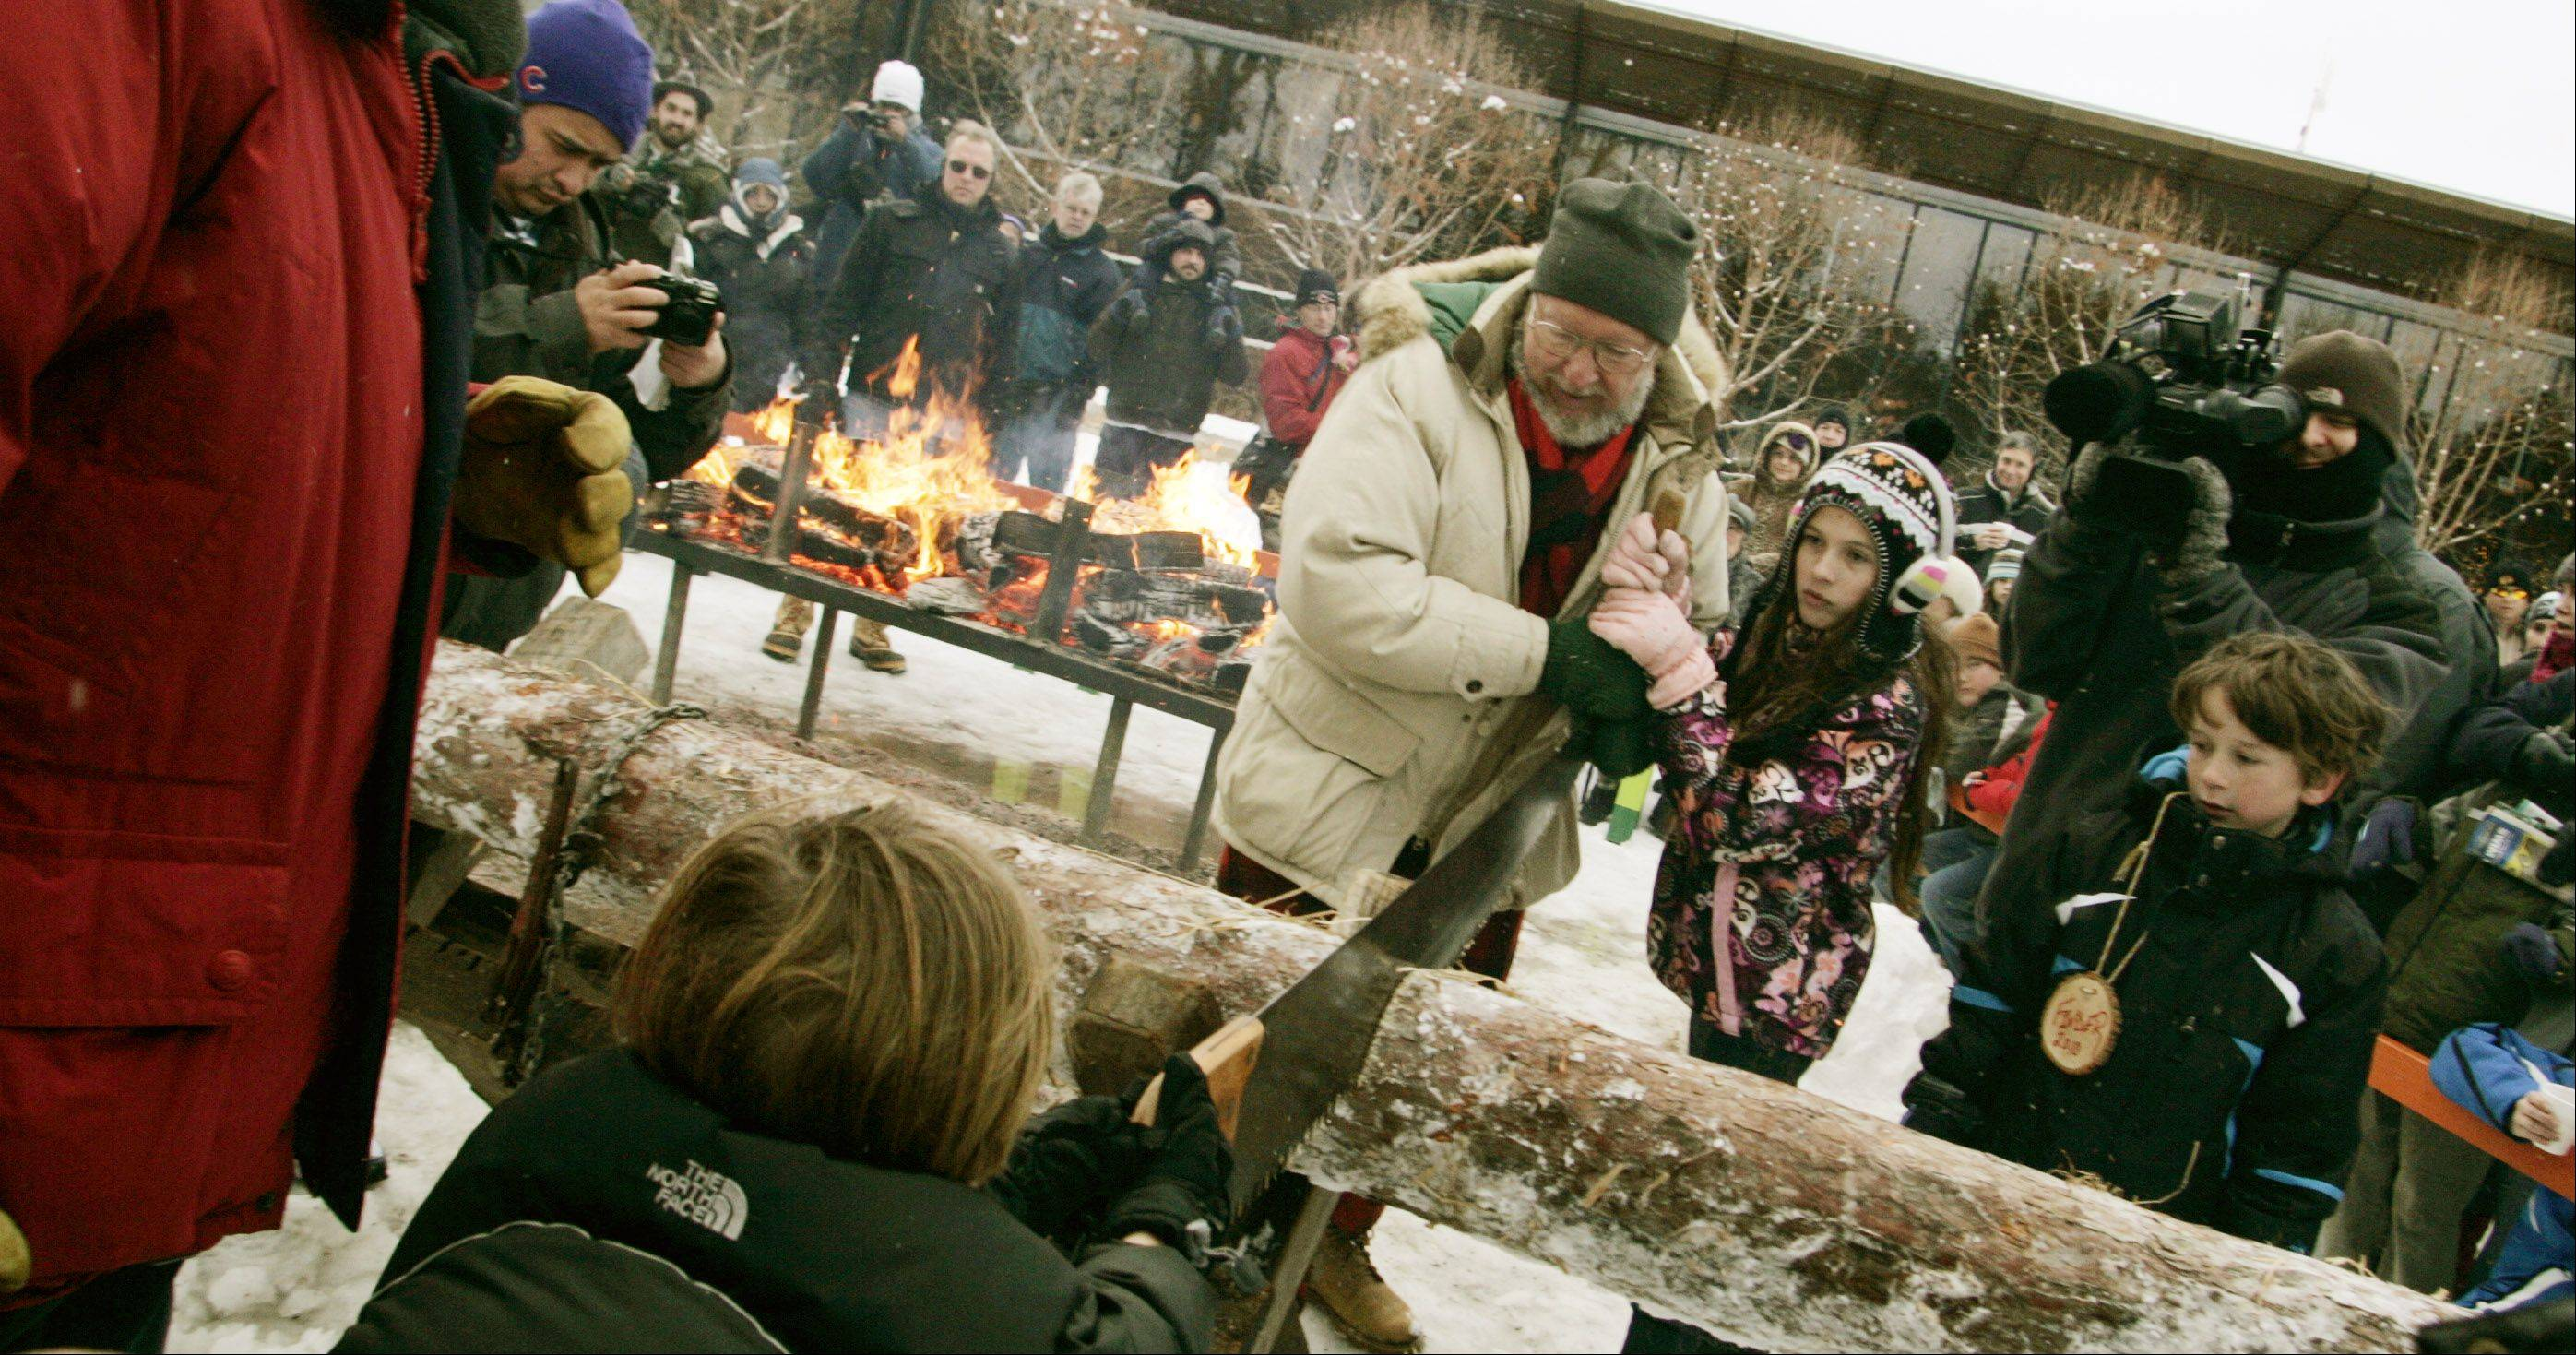 A youth and volunteer cut into the Yule Log during last year's Hunt for the Yule Log at the Morton Arboretum in Lisle.